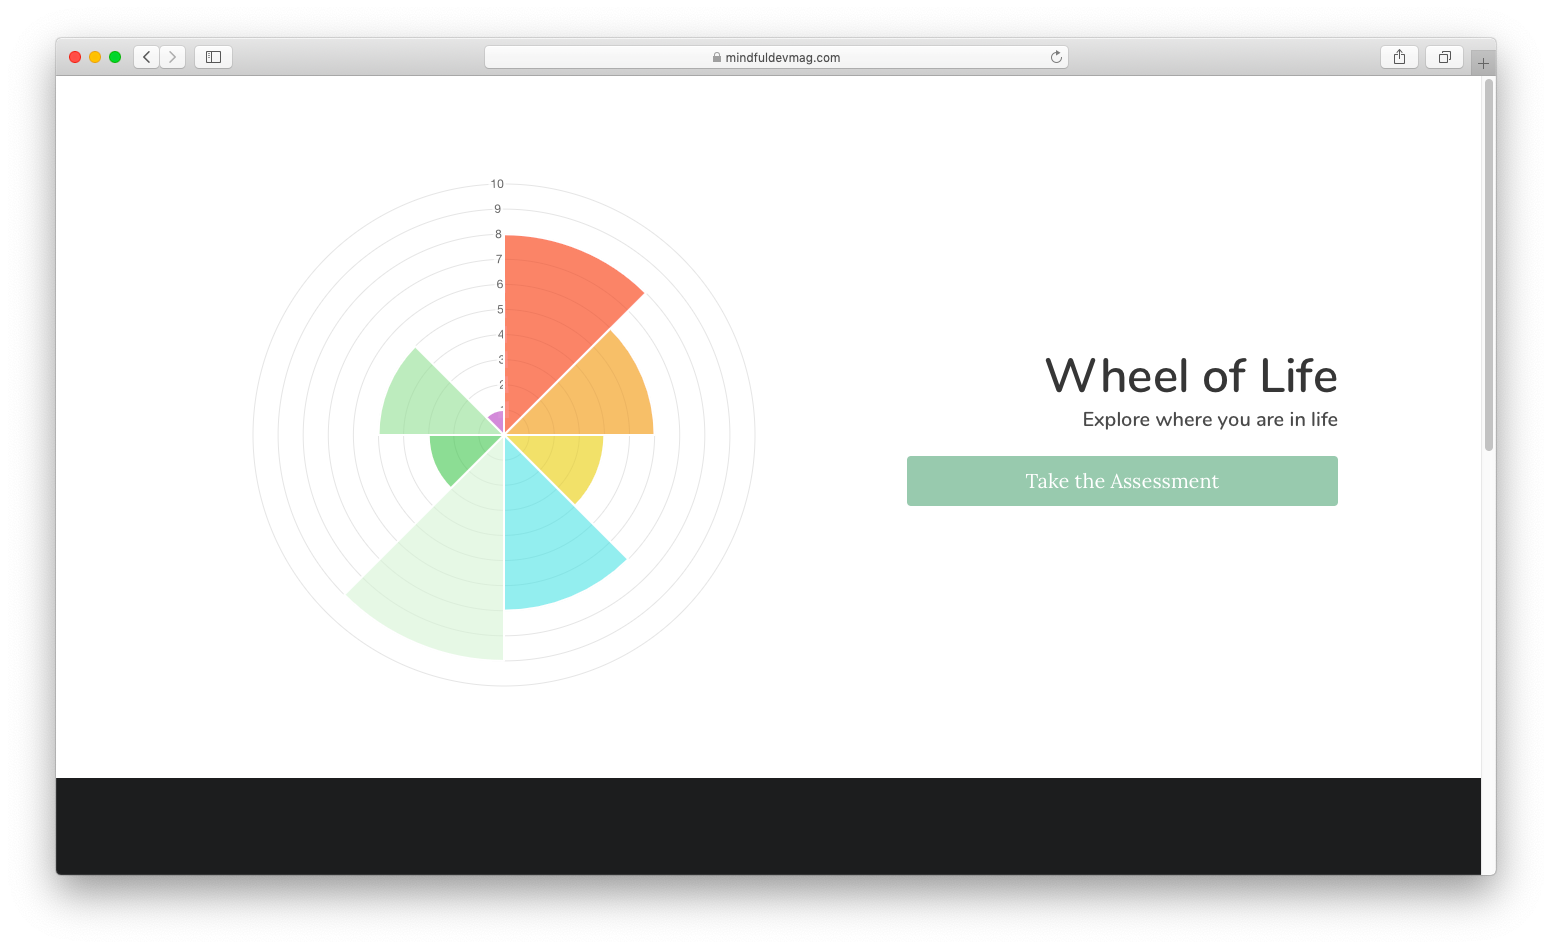 wheel of life assessment welcome page